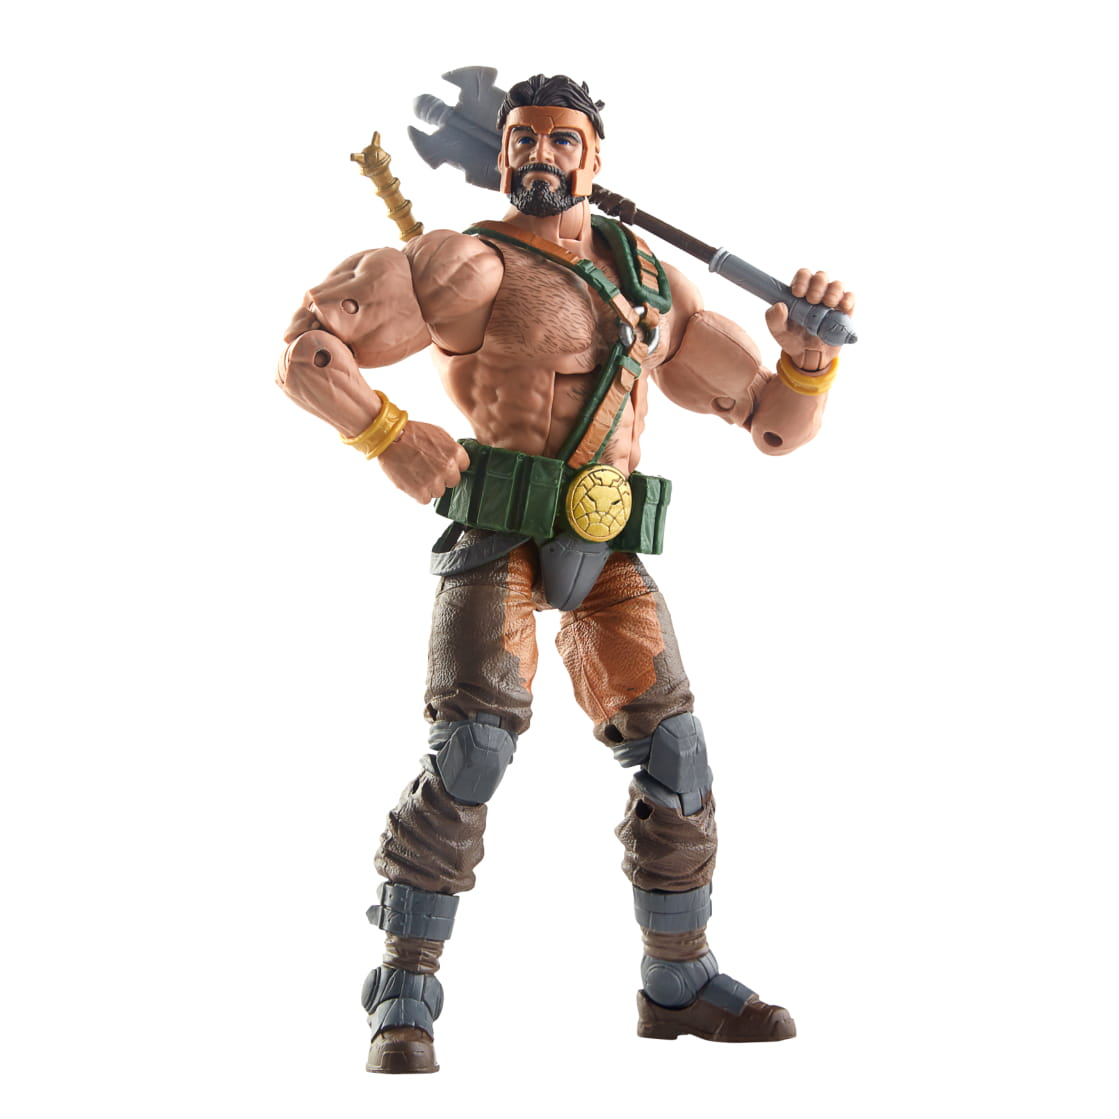 Avengers Herculus Marvel Legends Figure by Hasbro